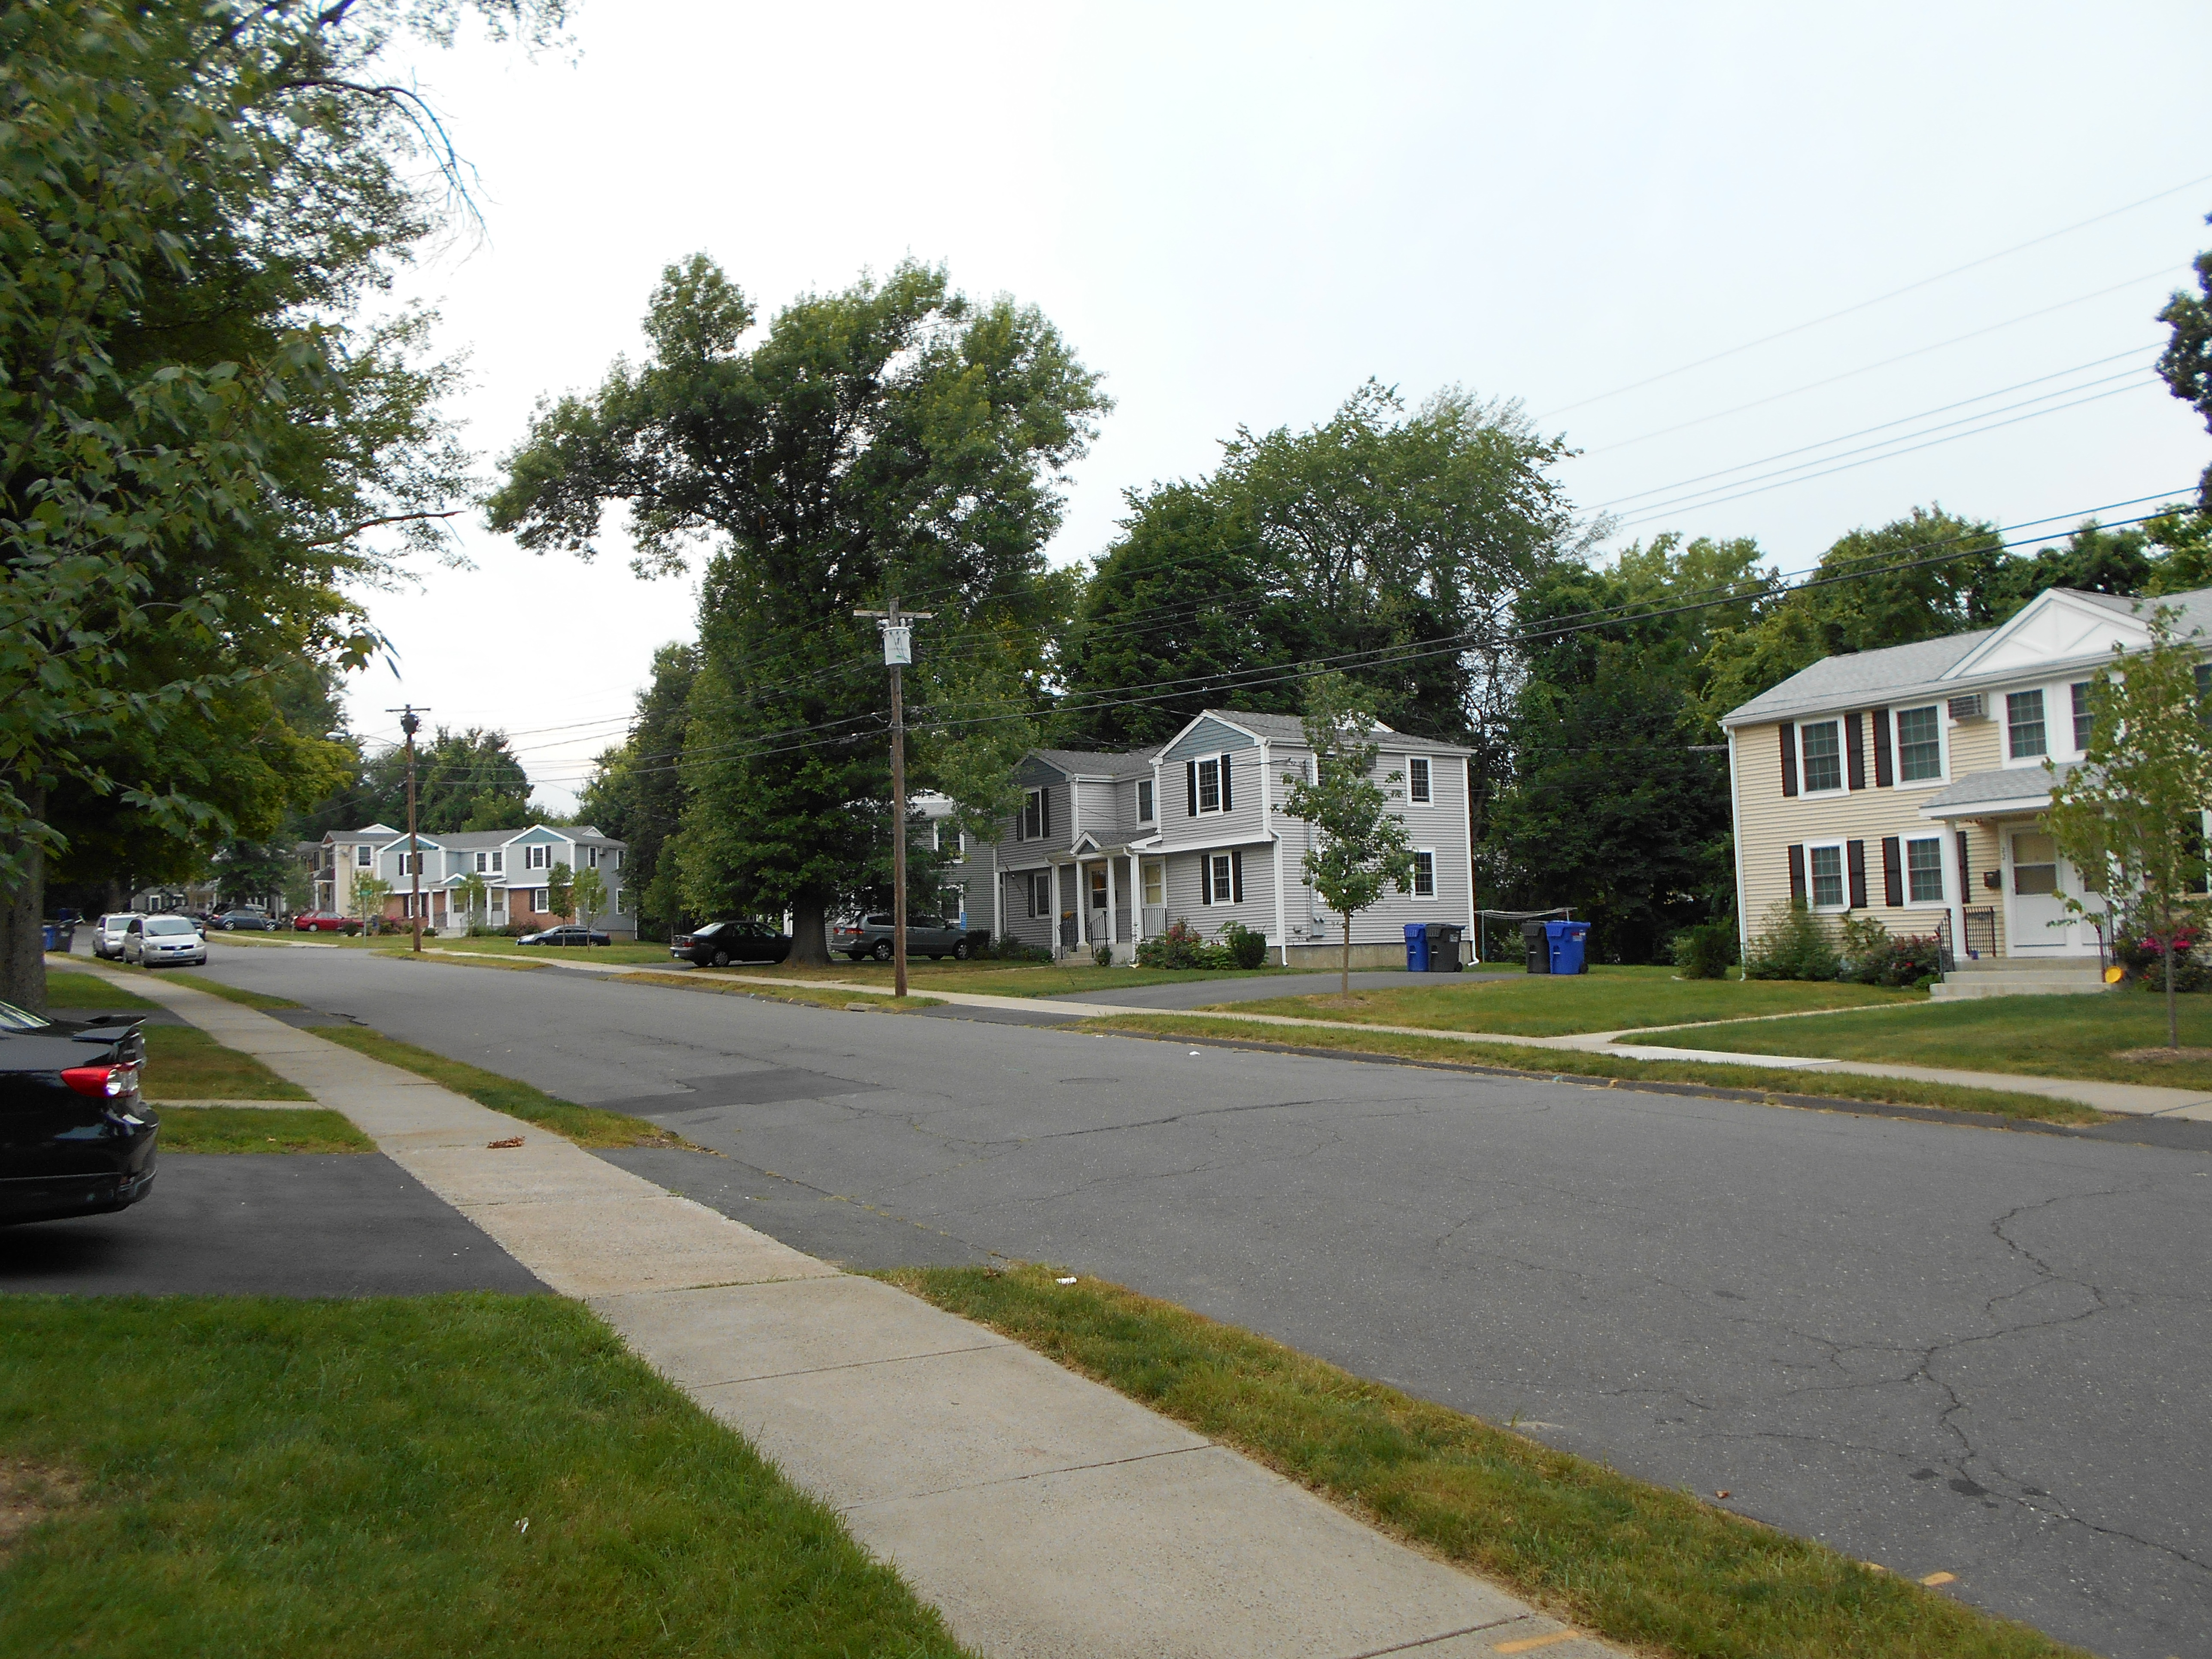 Streets of Bristol ct, Bristol, Ct, Streets, HQ Photo